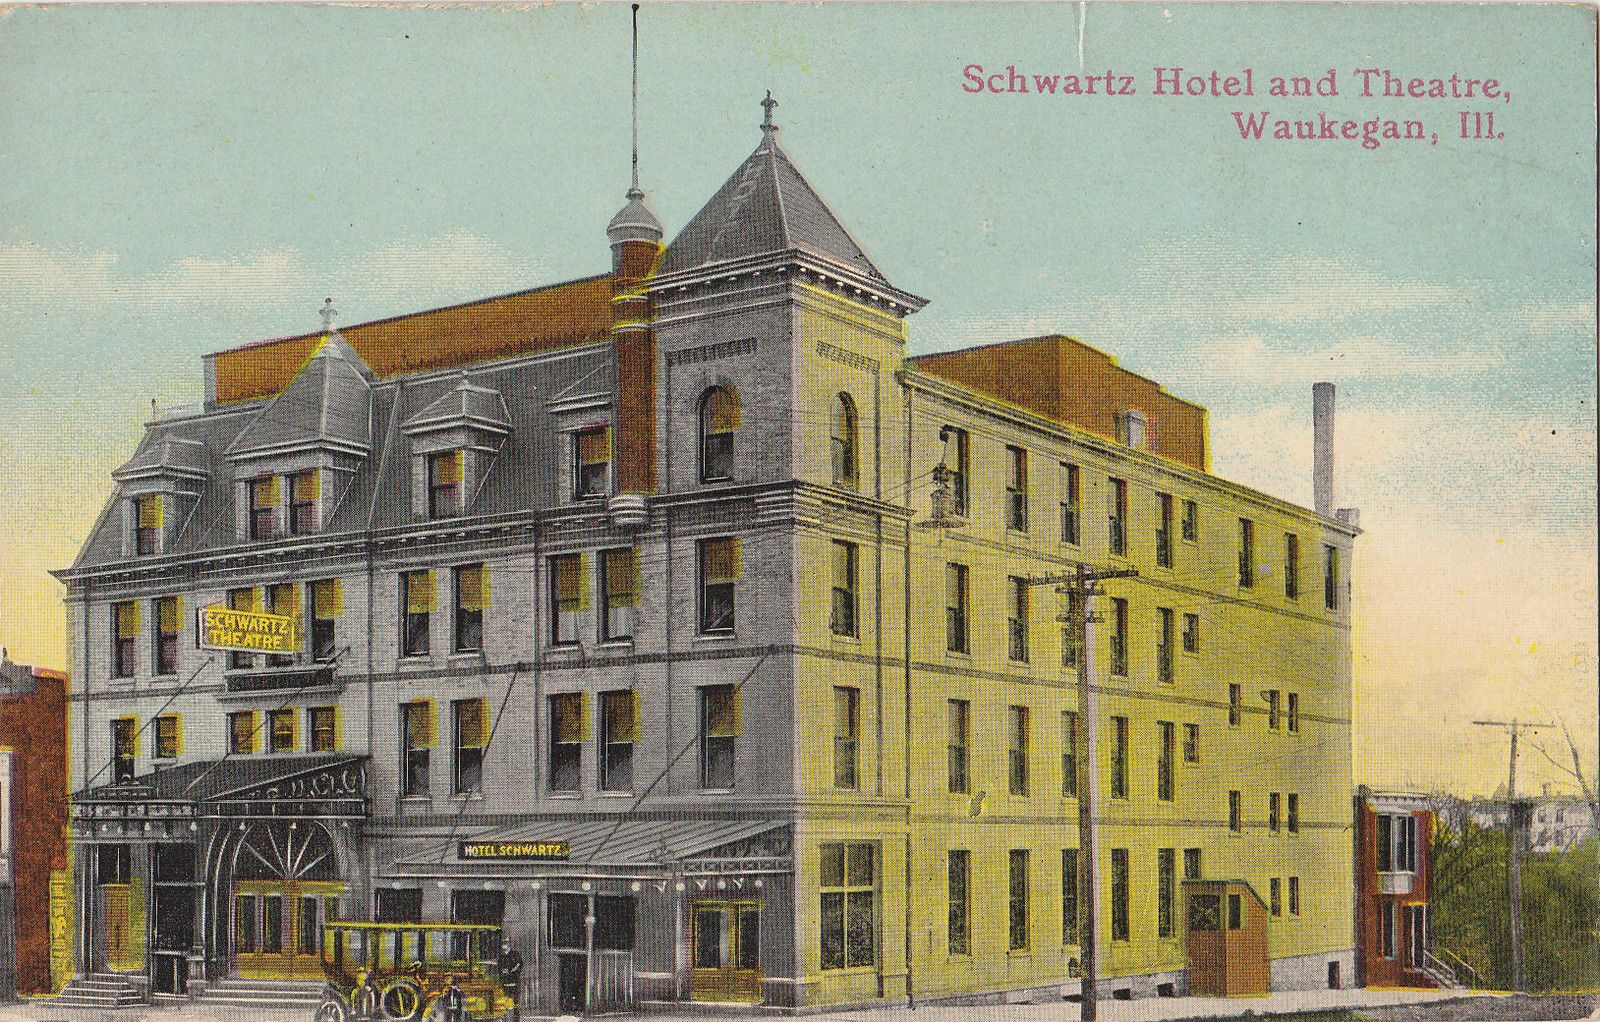 Schwartz Hotel And Theatre Waukegan Il Ebay